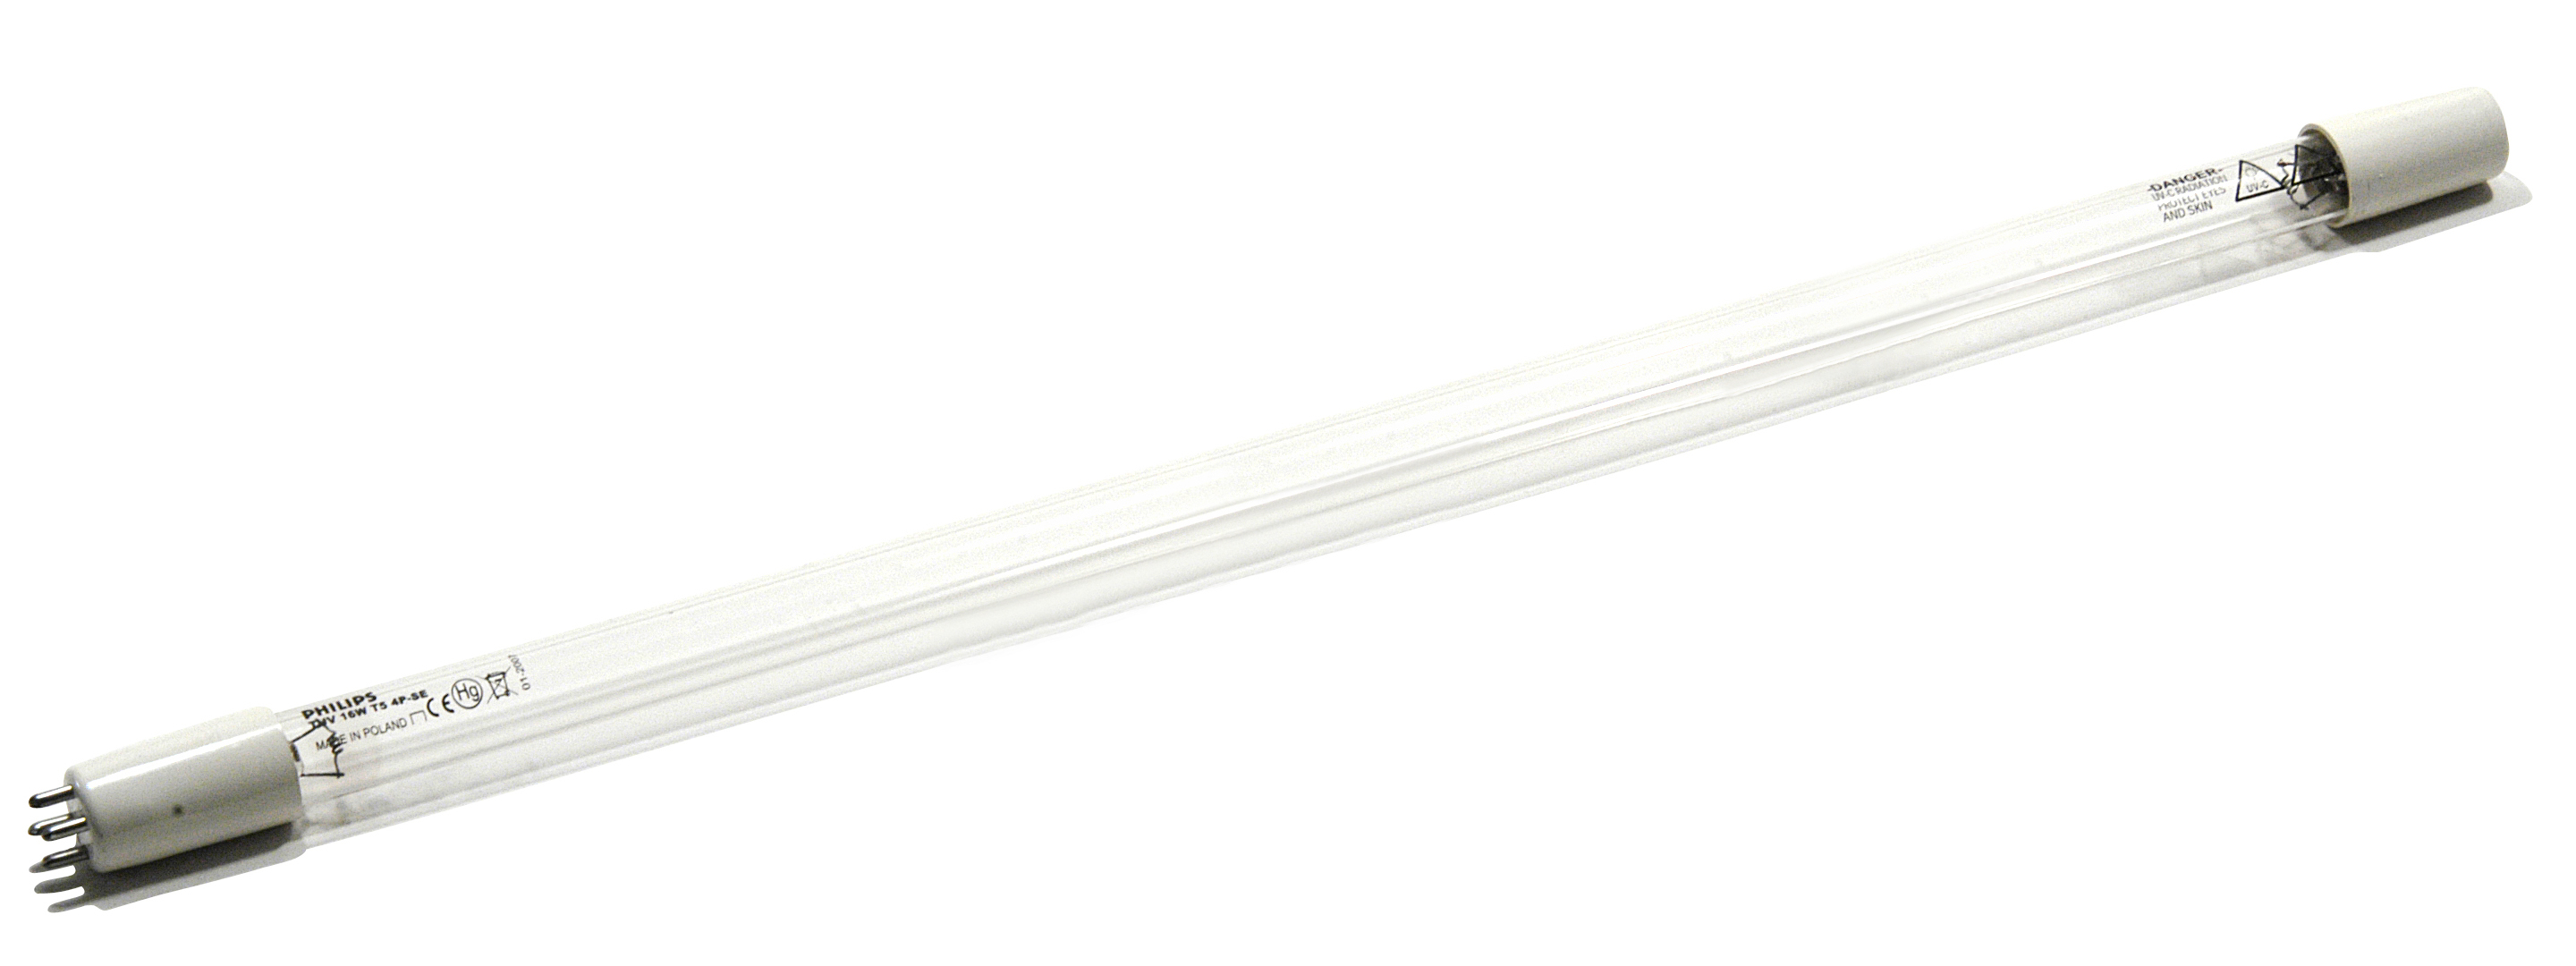 A Philips Germicidal Tube